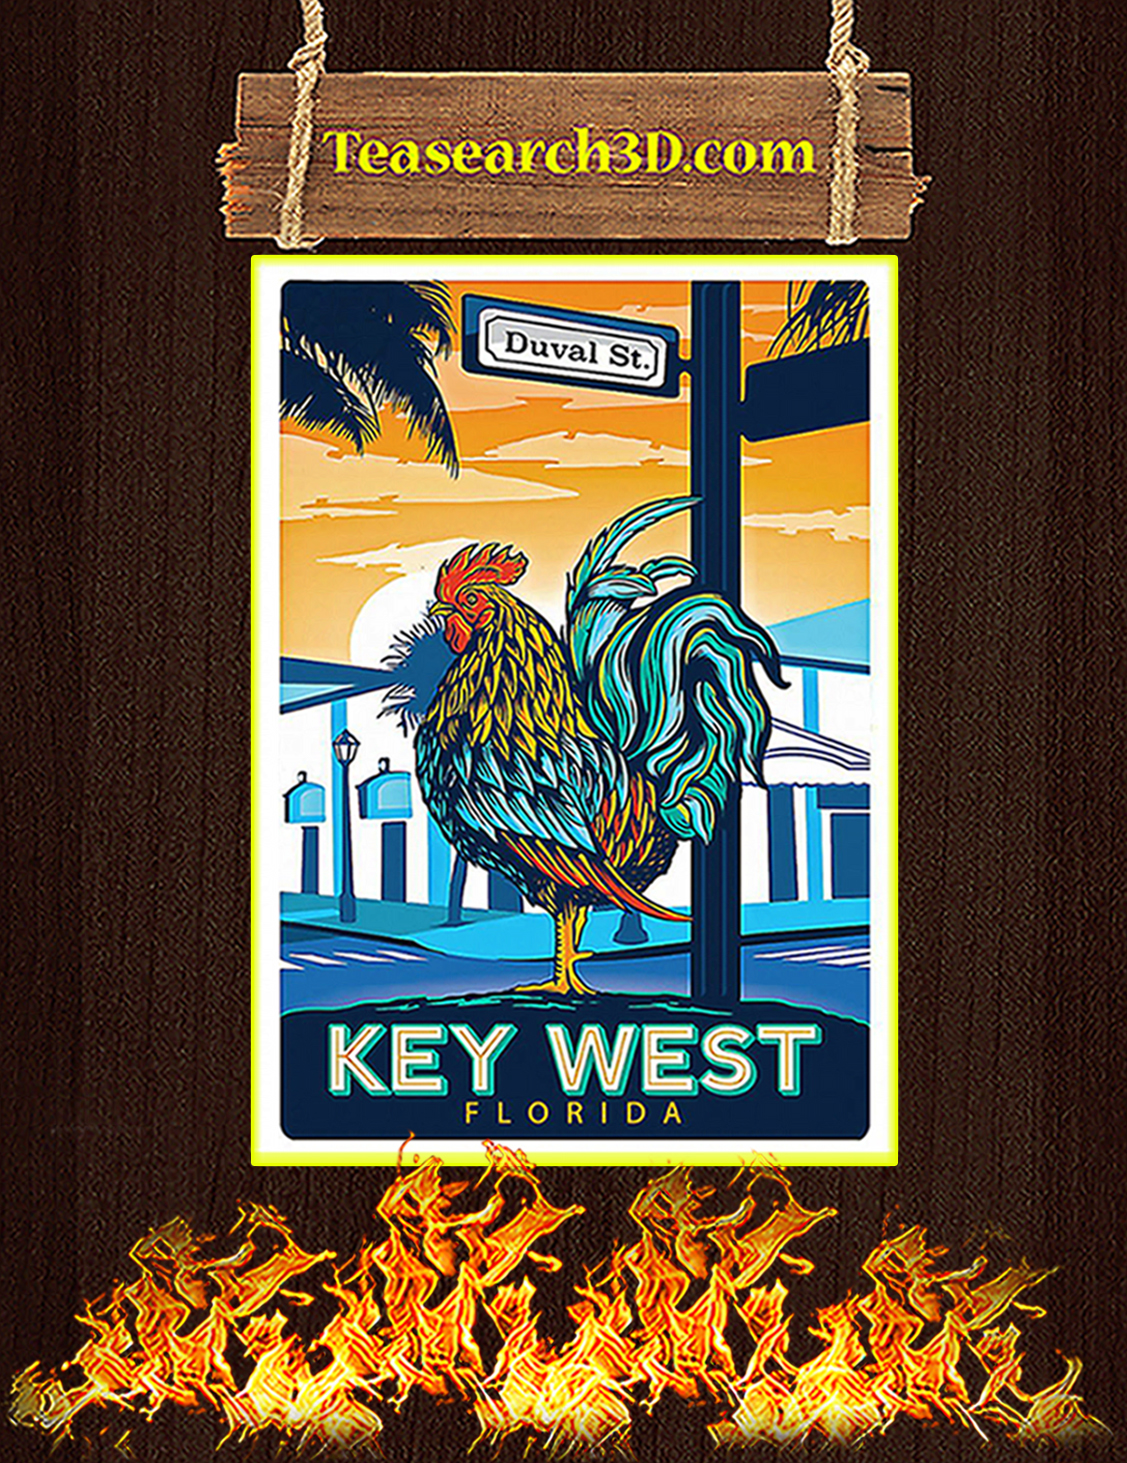 Chicken key west florida duval street poster A3